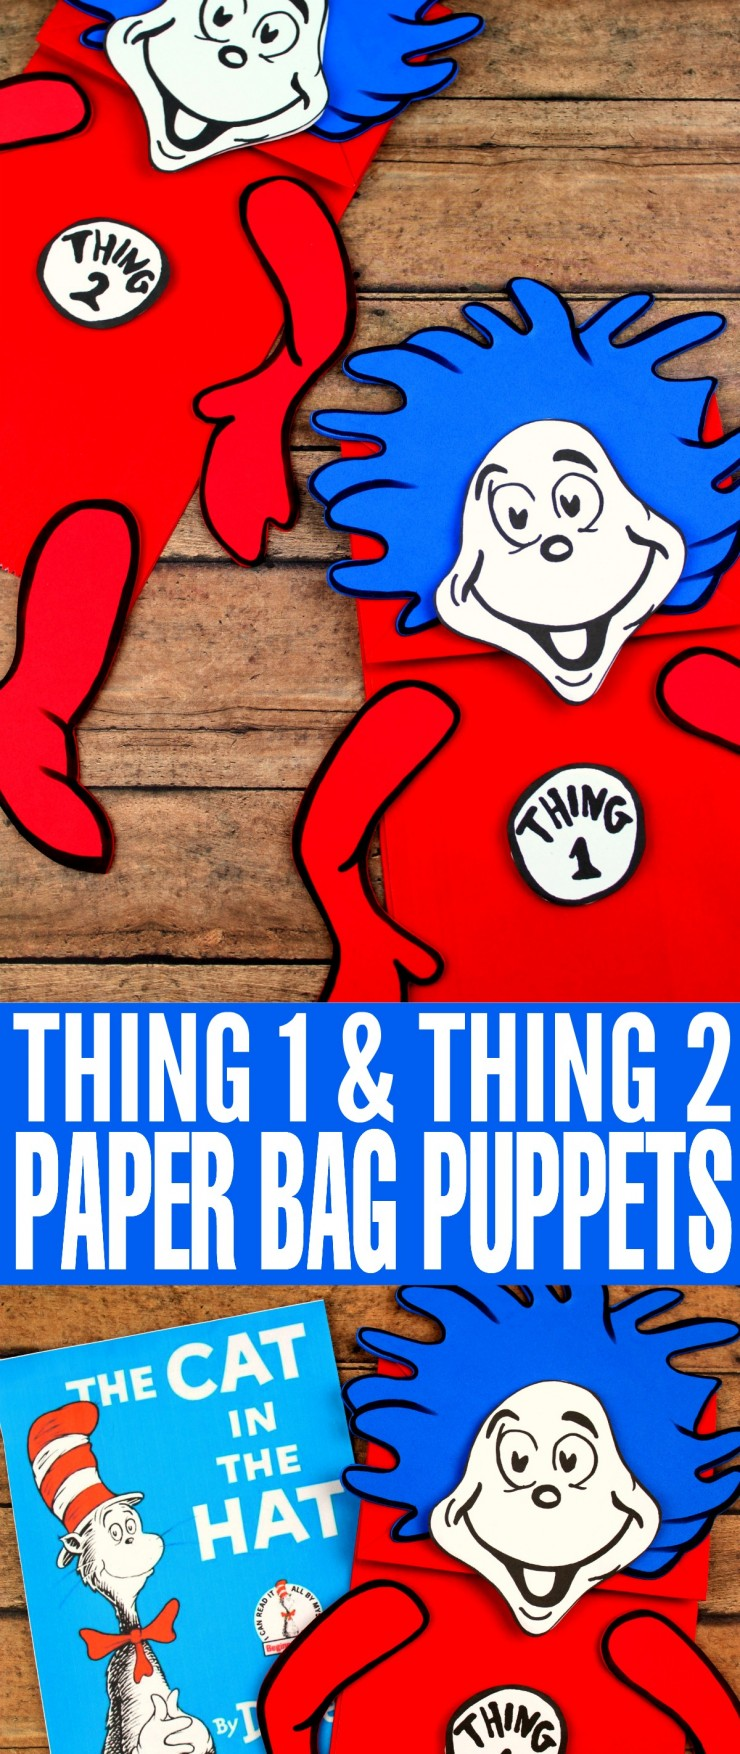 This Thing 1 and Thing 2 Paper Bag Puppet Craft is a fun kids craft that ties in really well with The Cat in the Hat. It's a perfect craft for Dr. Seuss day which is coming up on the March 2nd!